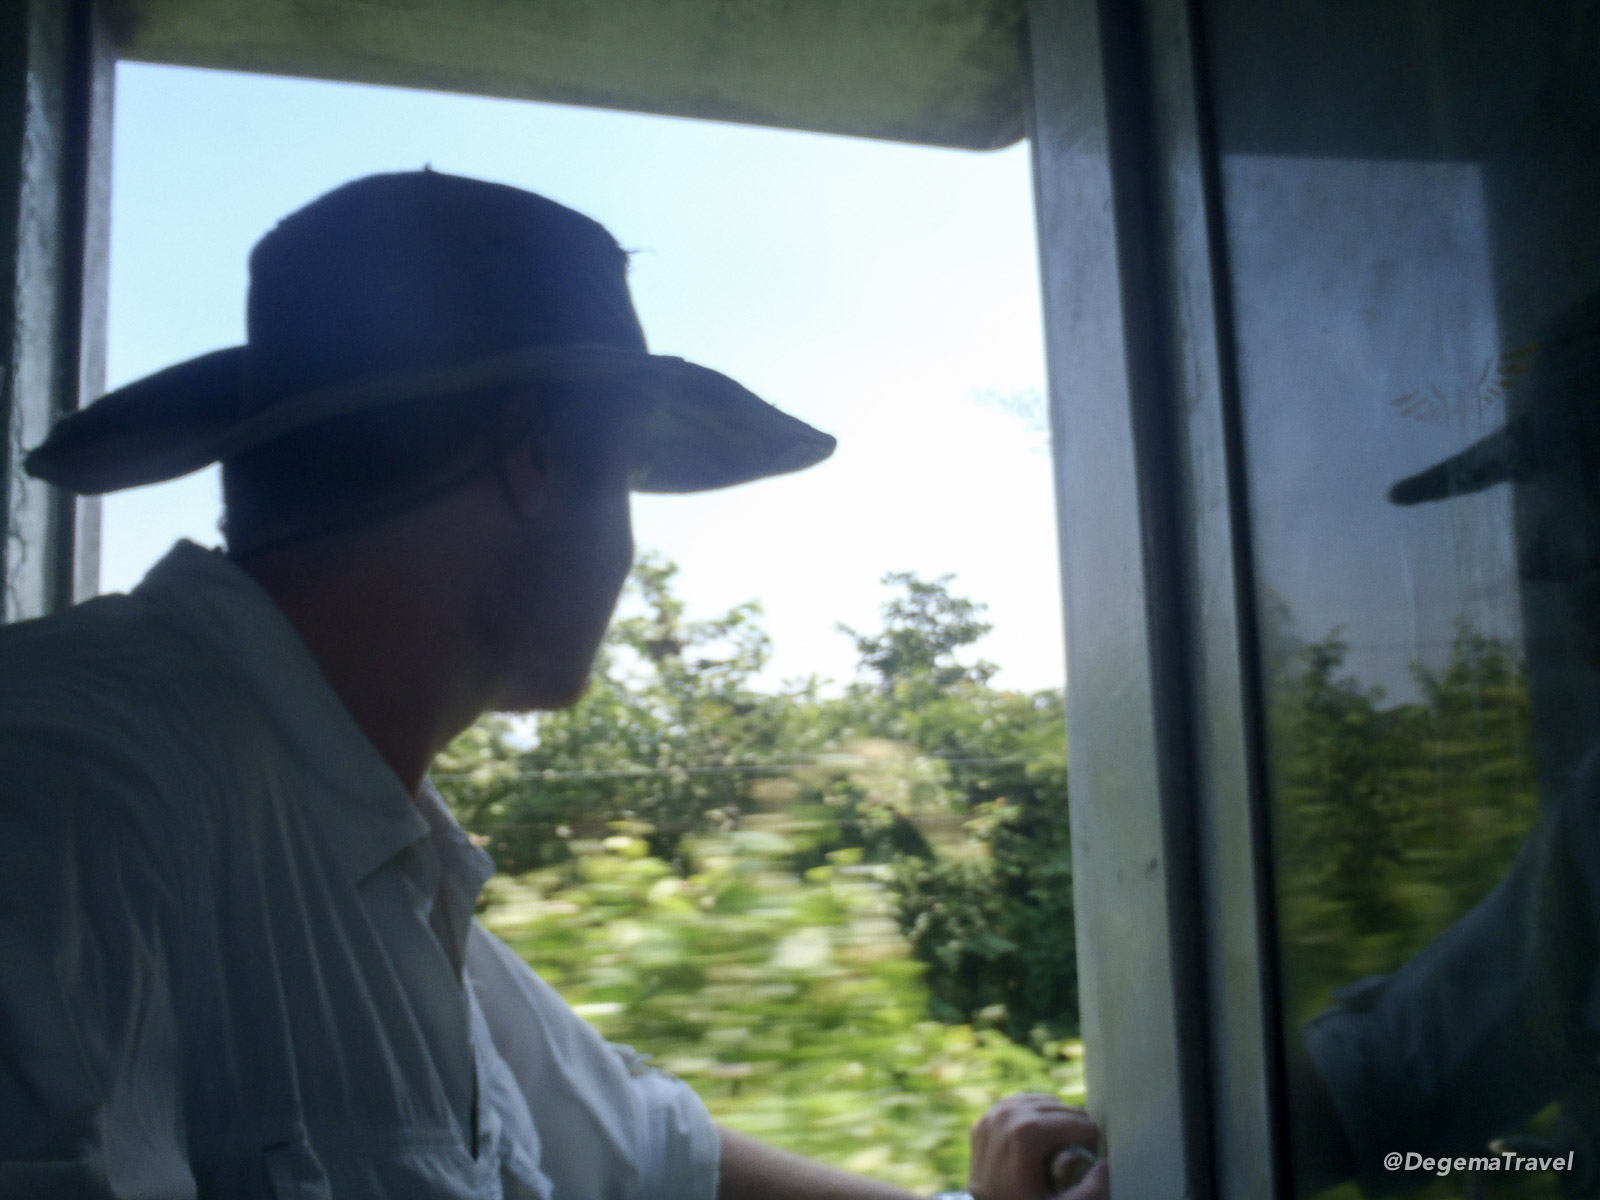 Riding in the open door of a moving train near Kanchanaburi, Thailand